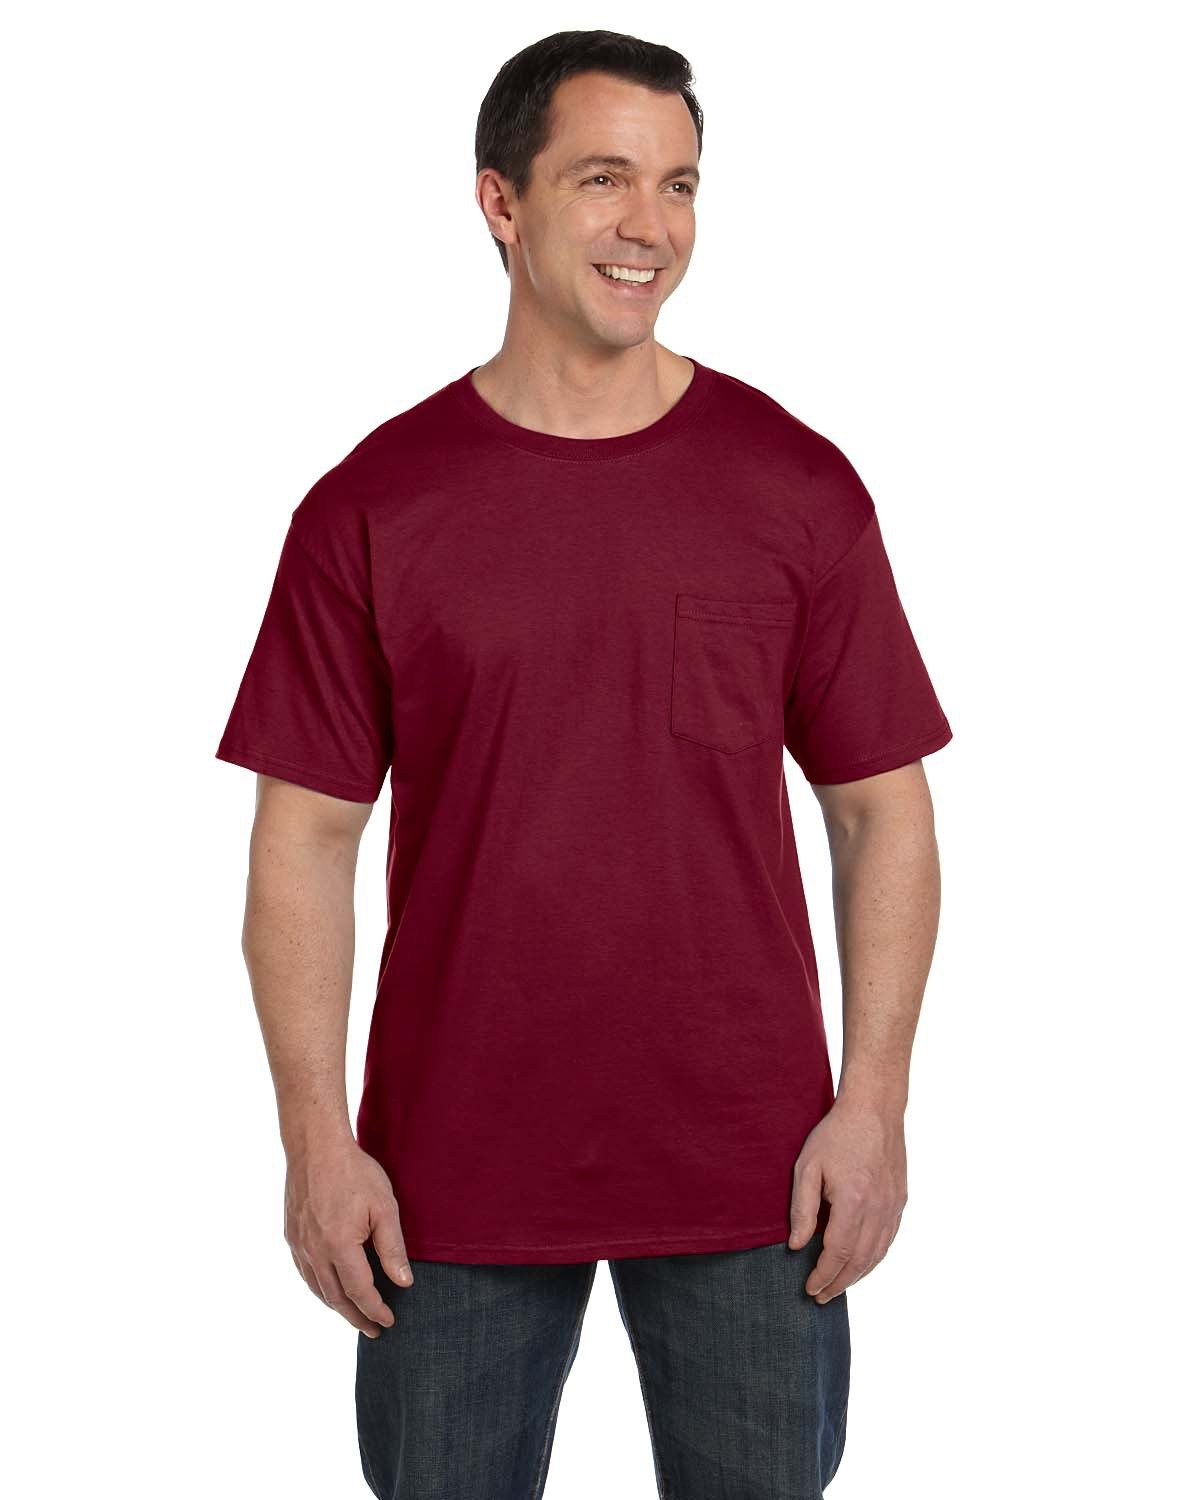 Hanes Adult Beefy-T® with Pocket CARDINAL